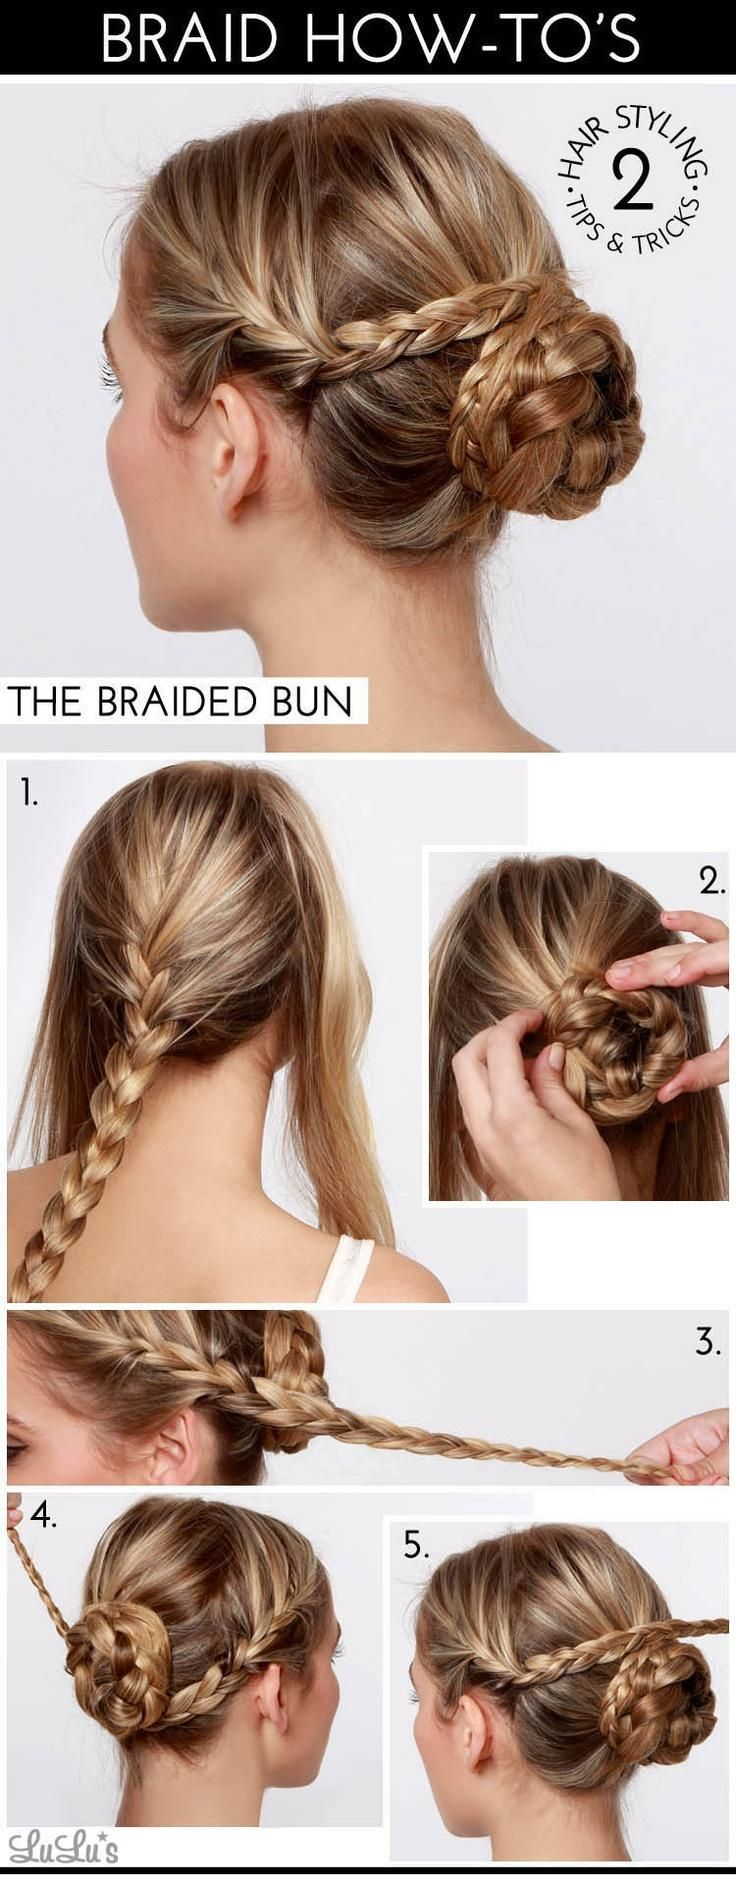 I want to wear my hair this way. I always wear my hair in buns, this is something different and professional looking.